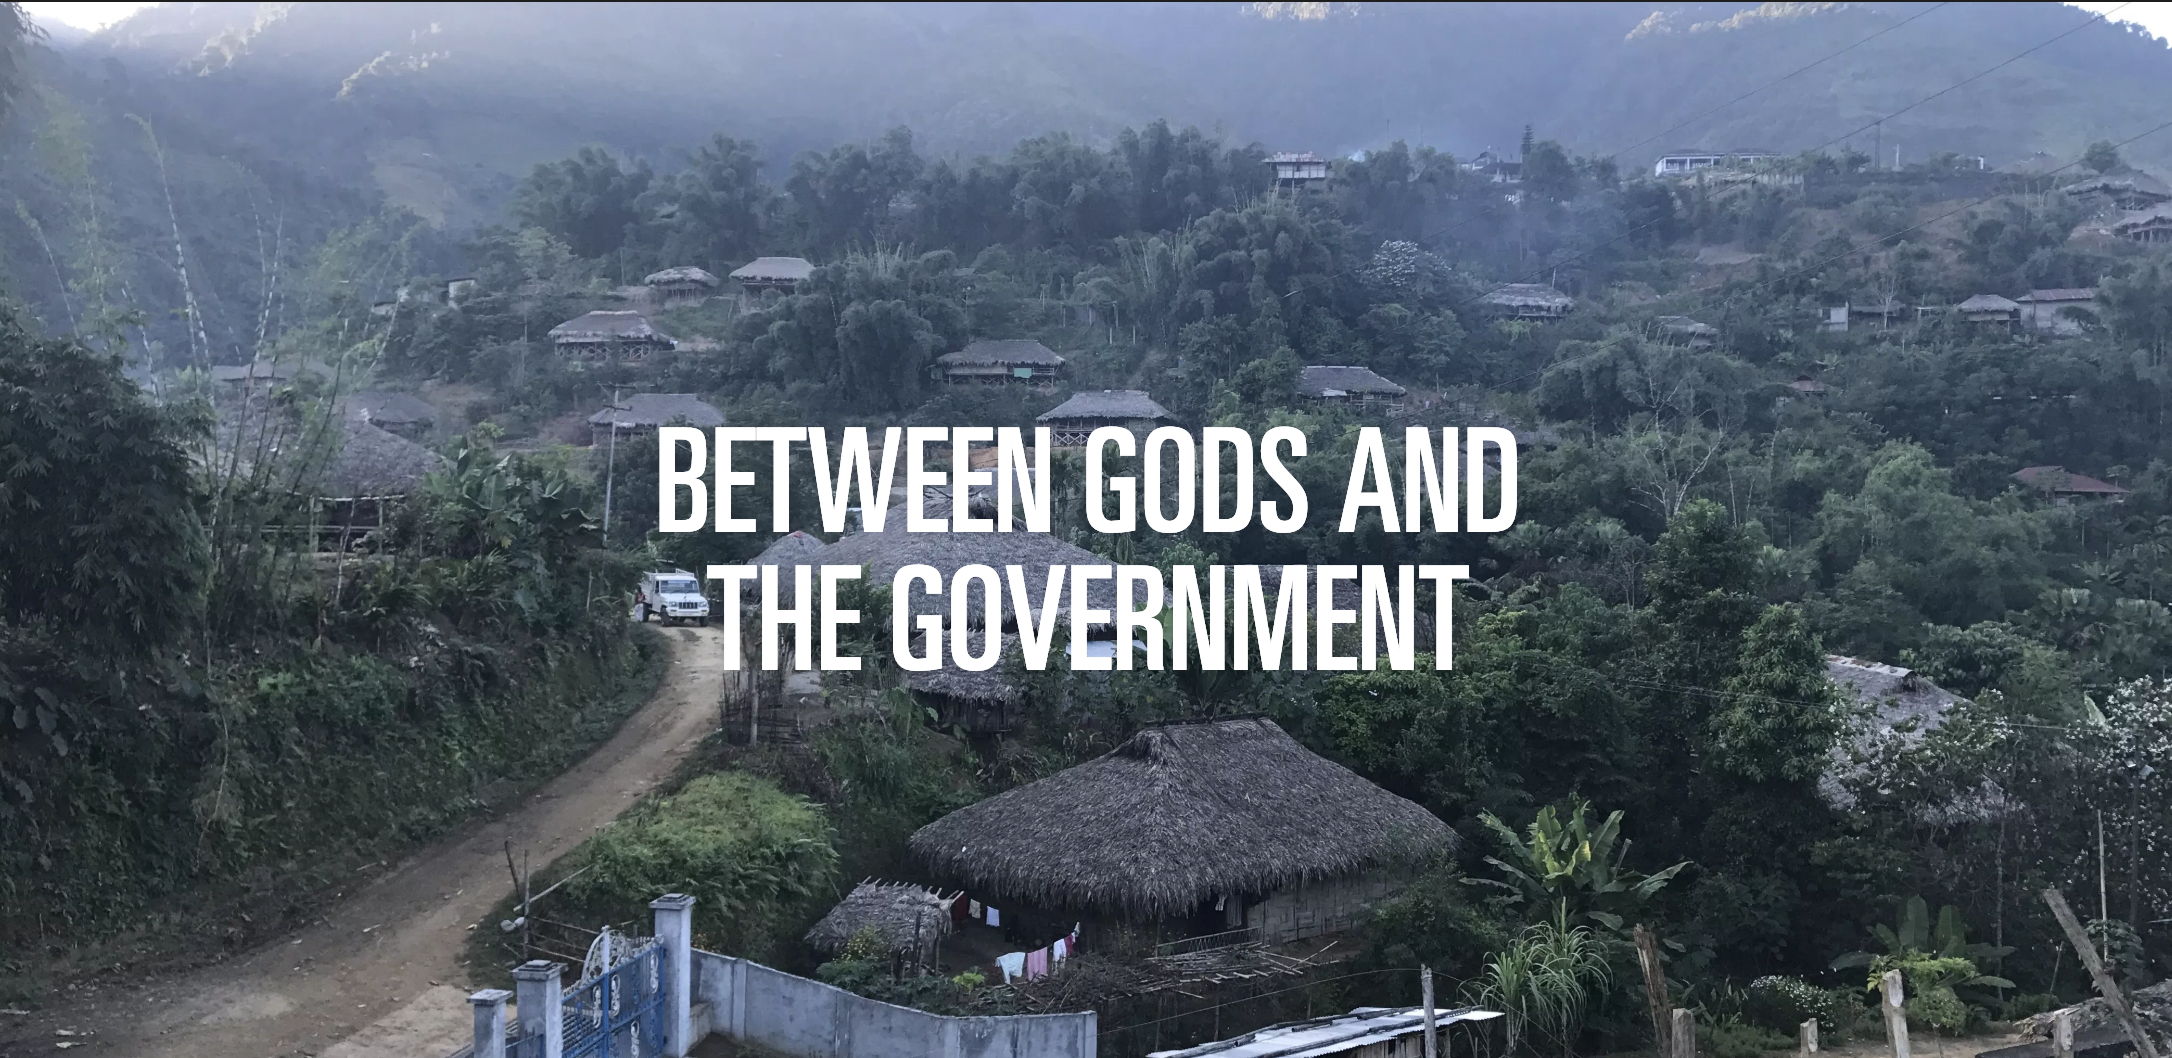 Roads & Kingdoms: Between gods and the government - India's government has committed to rebuilding indigenous faiths in the country's northeast, which has helped tribal religions gain new ground. But that has come at a price. Ariel Sophia Bardi reports from Arunachal Pradesh.